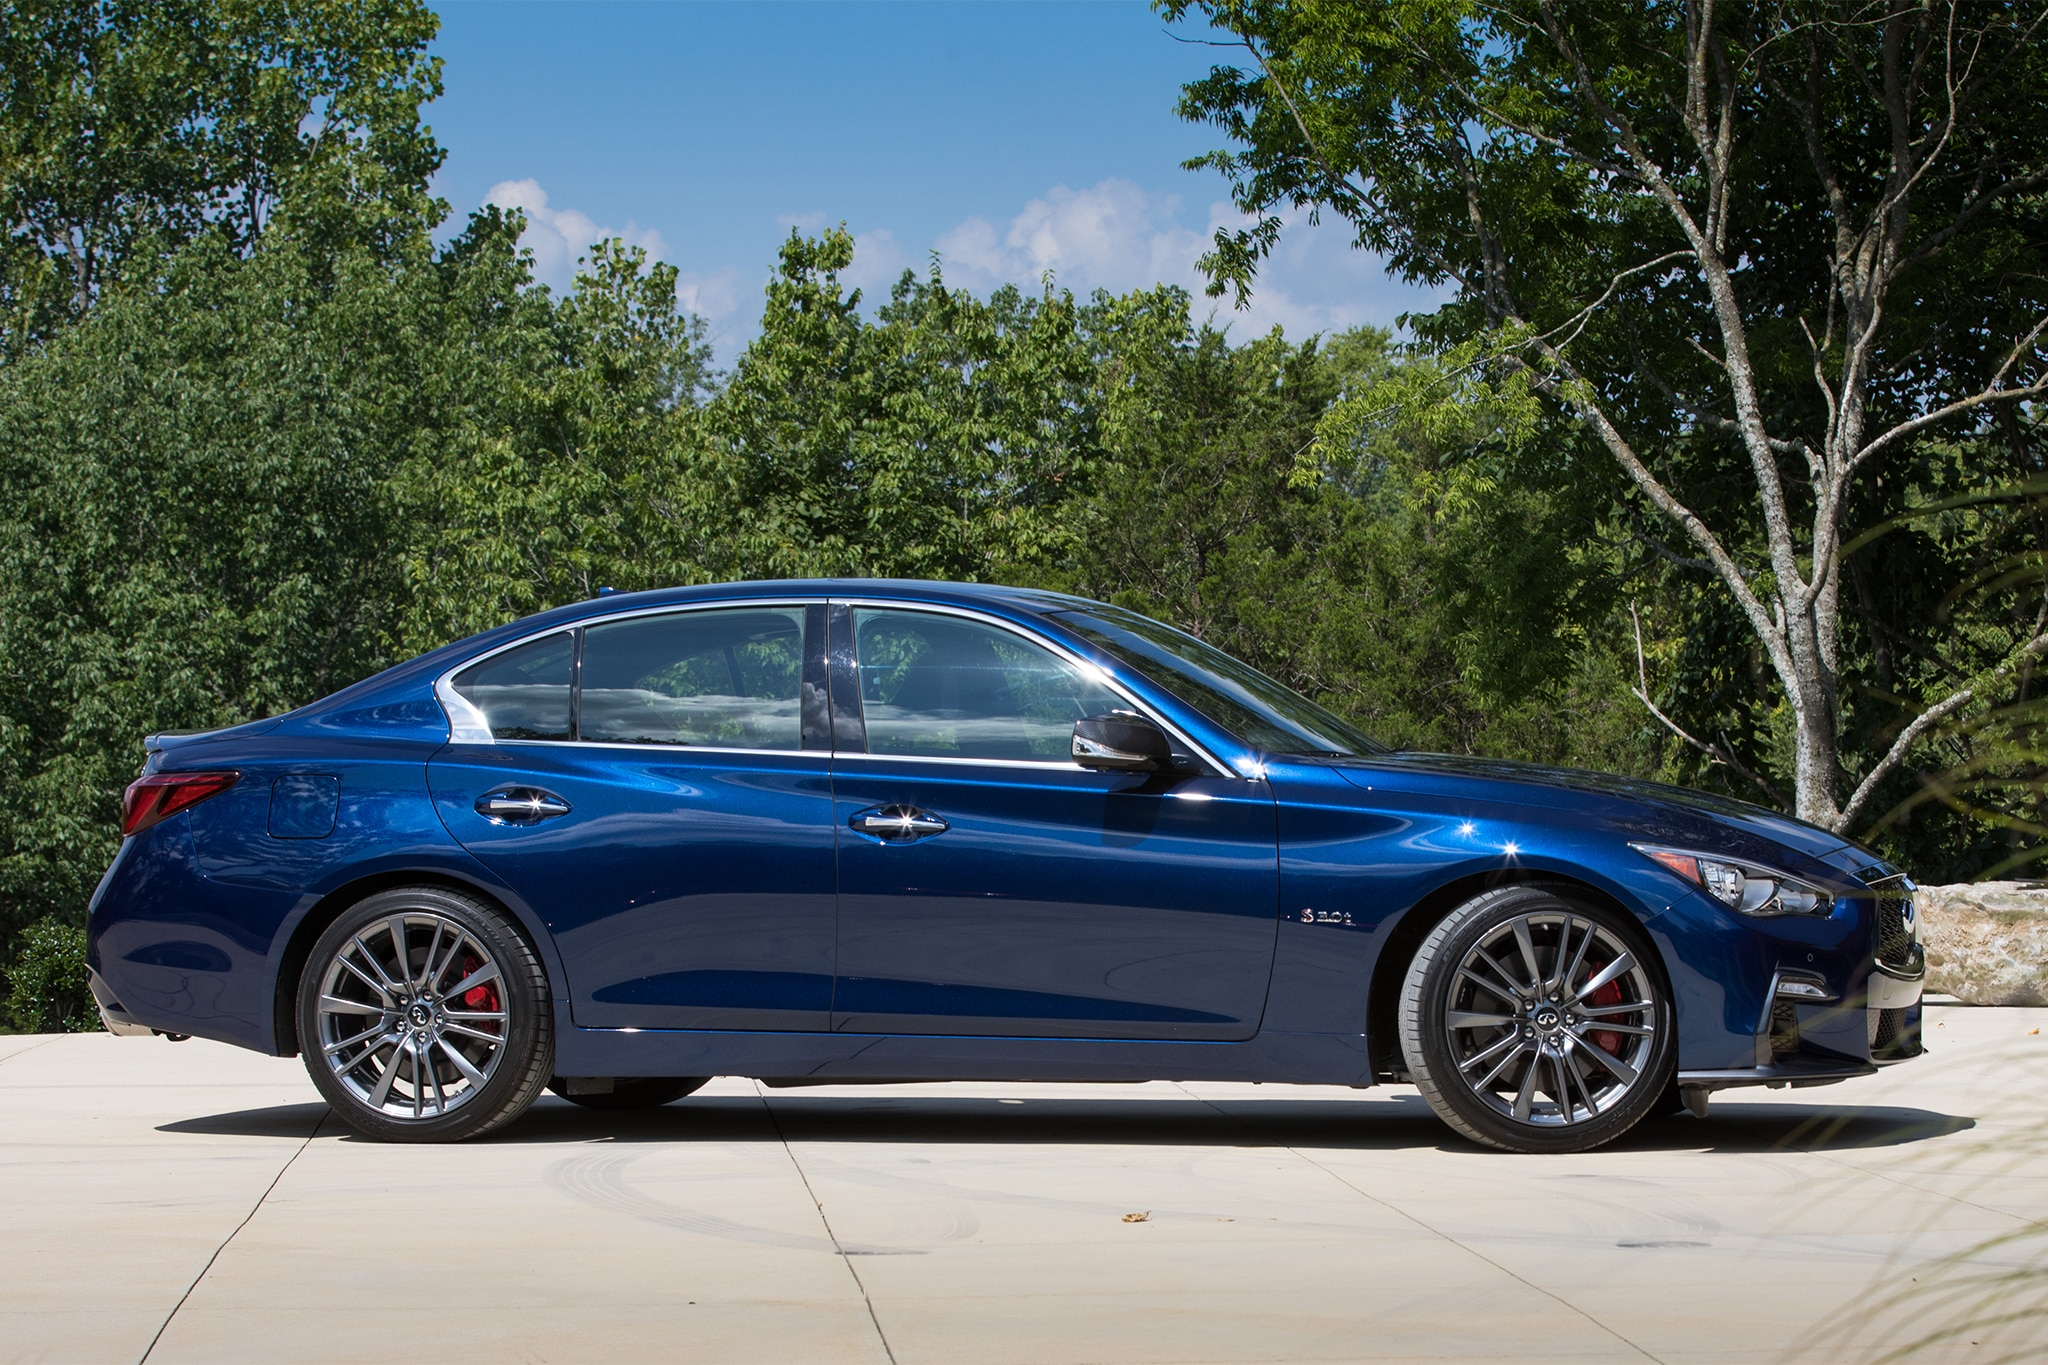 2018 infiniti red sport 400. Beautiful Sport The Red Sportu0027s Interior Makes Heavy Use Of Blackcolored Materials And  Carbonfiberlike Details Without Coming Off As Dark Johnny Cashu0027s Suit Closet With 2018 Infiniti Red Sport 400